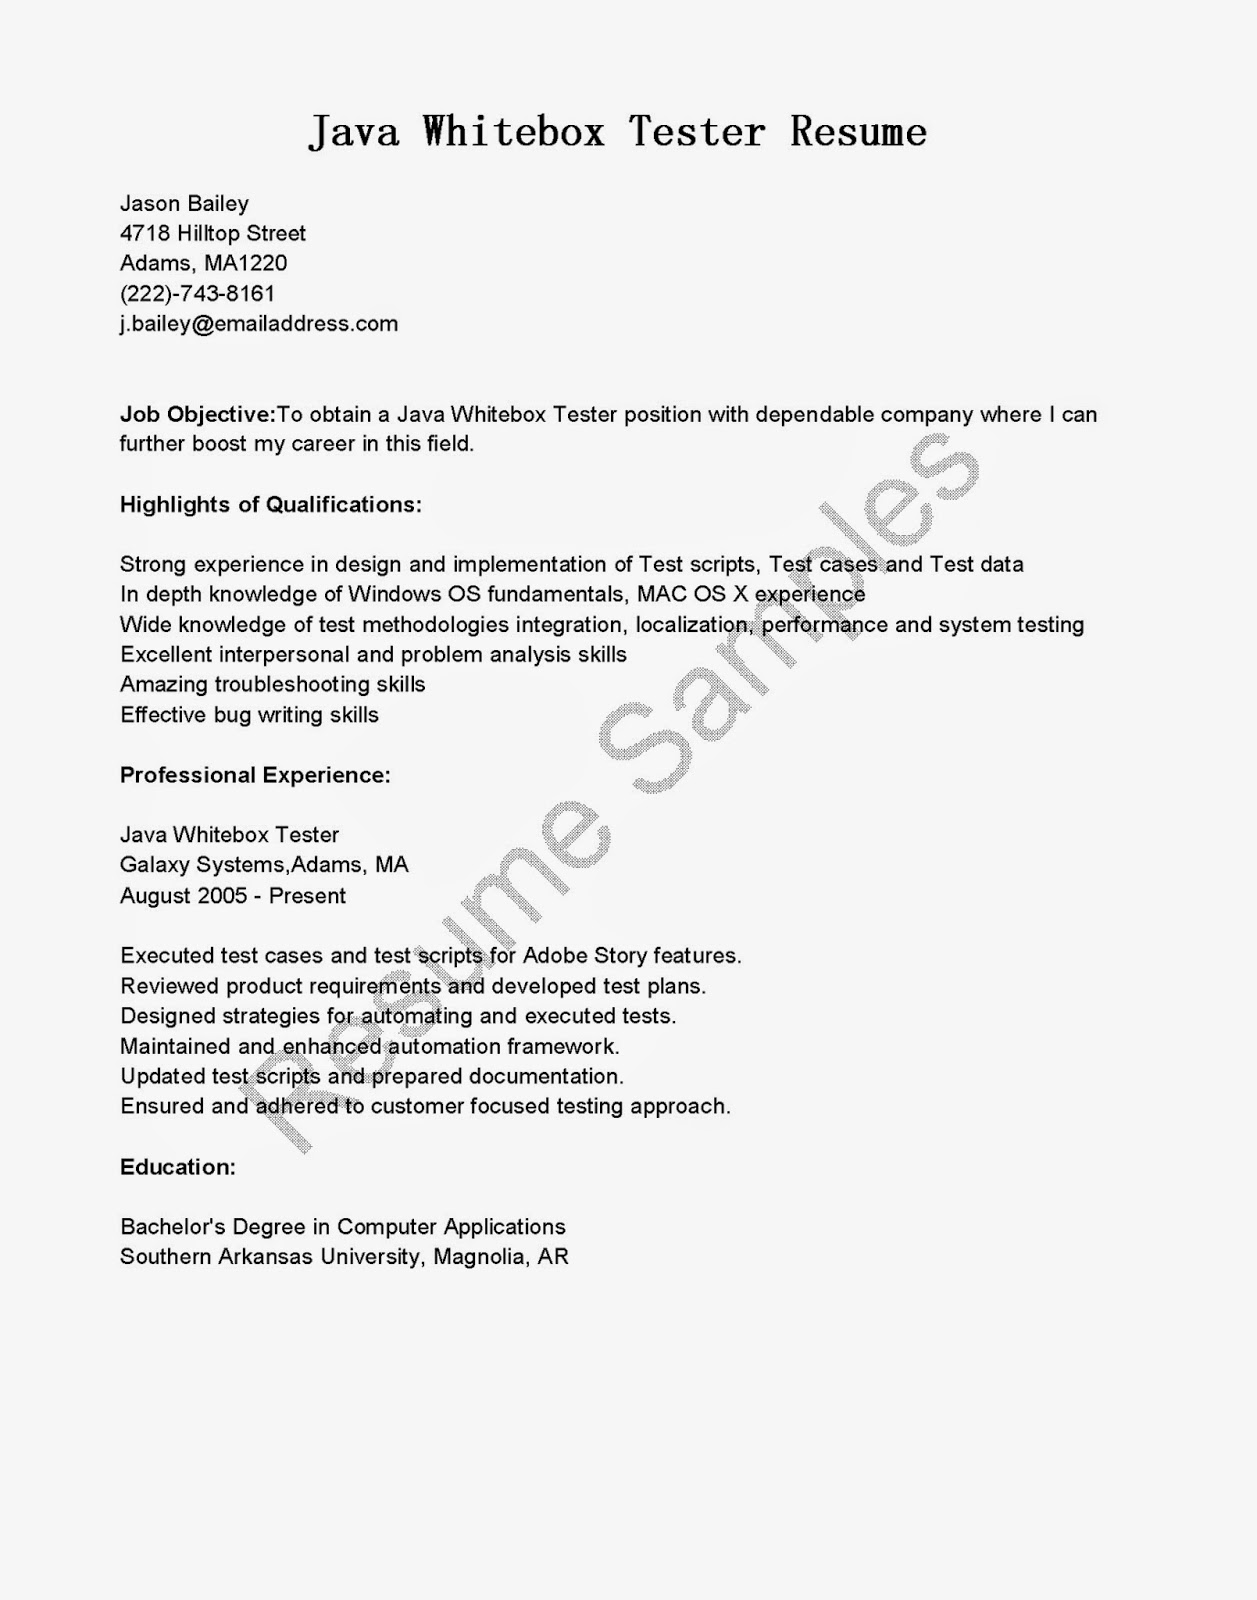 resume samples java whitebox tester resume sample